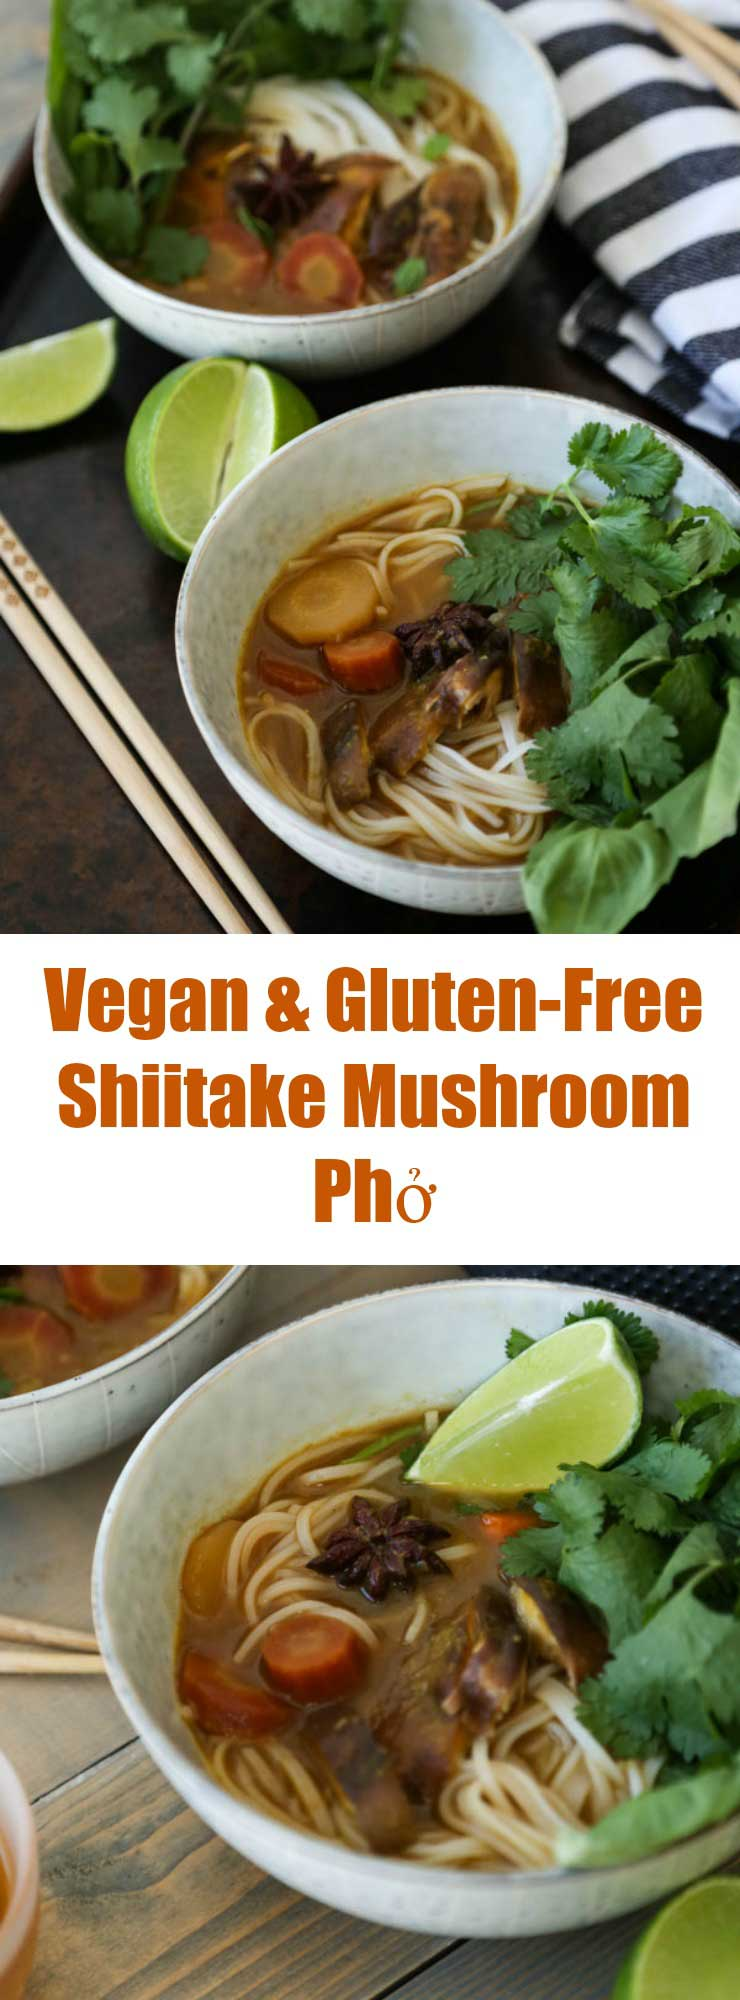 Warm and savory broth makes this authentic Pho so delicious. Vegan and gluten-free!